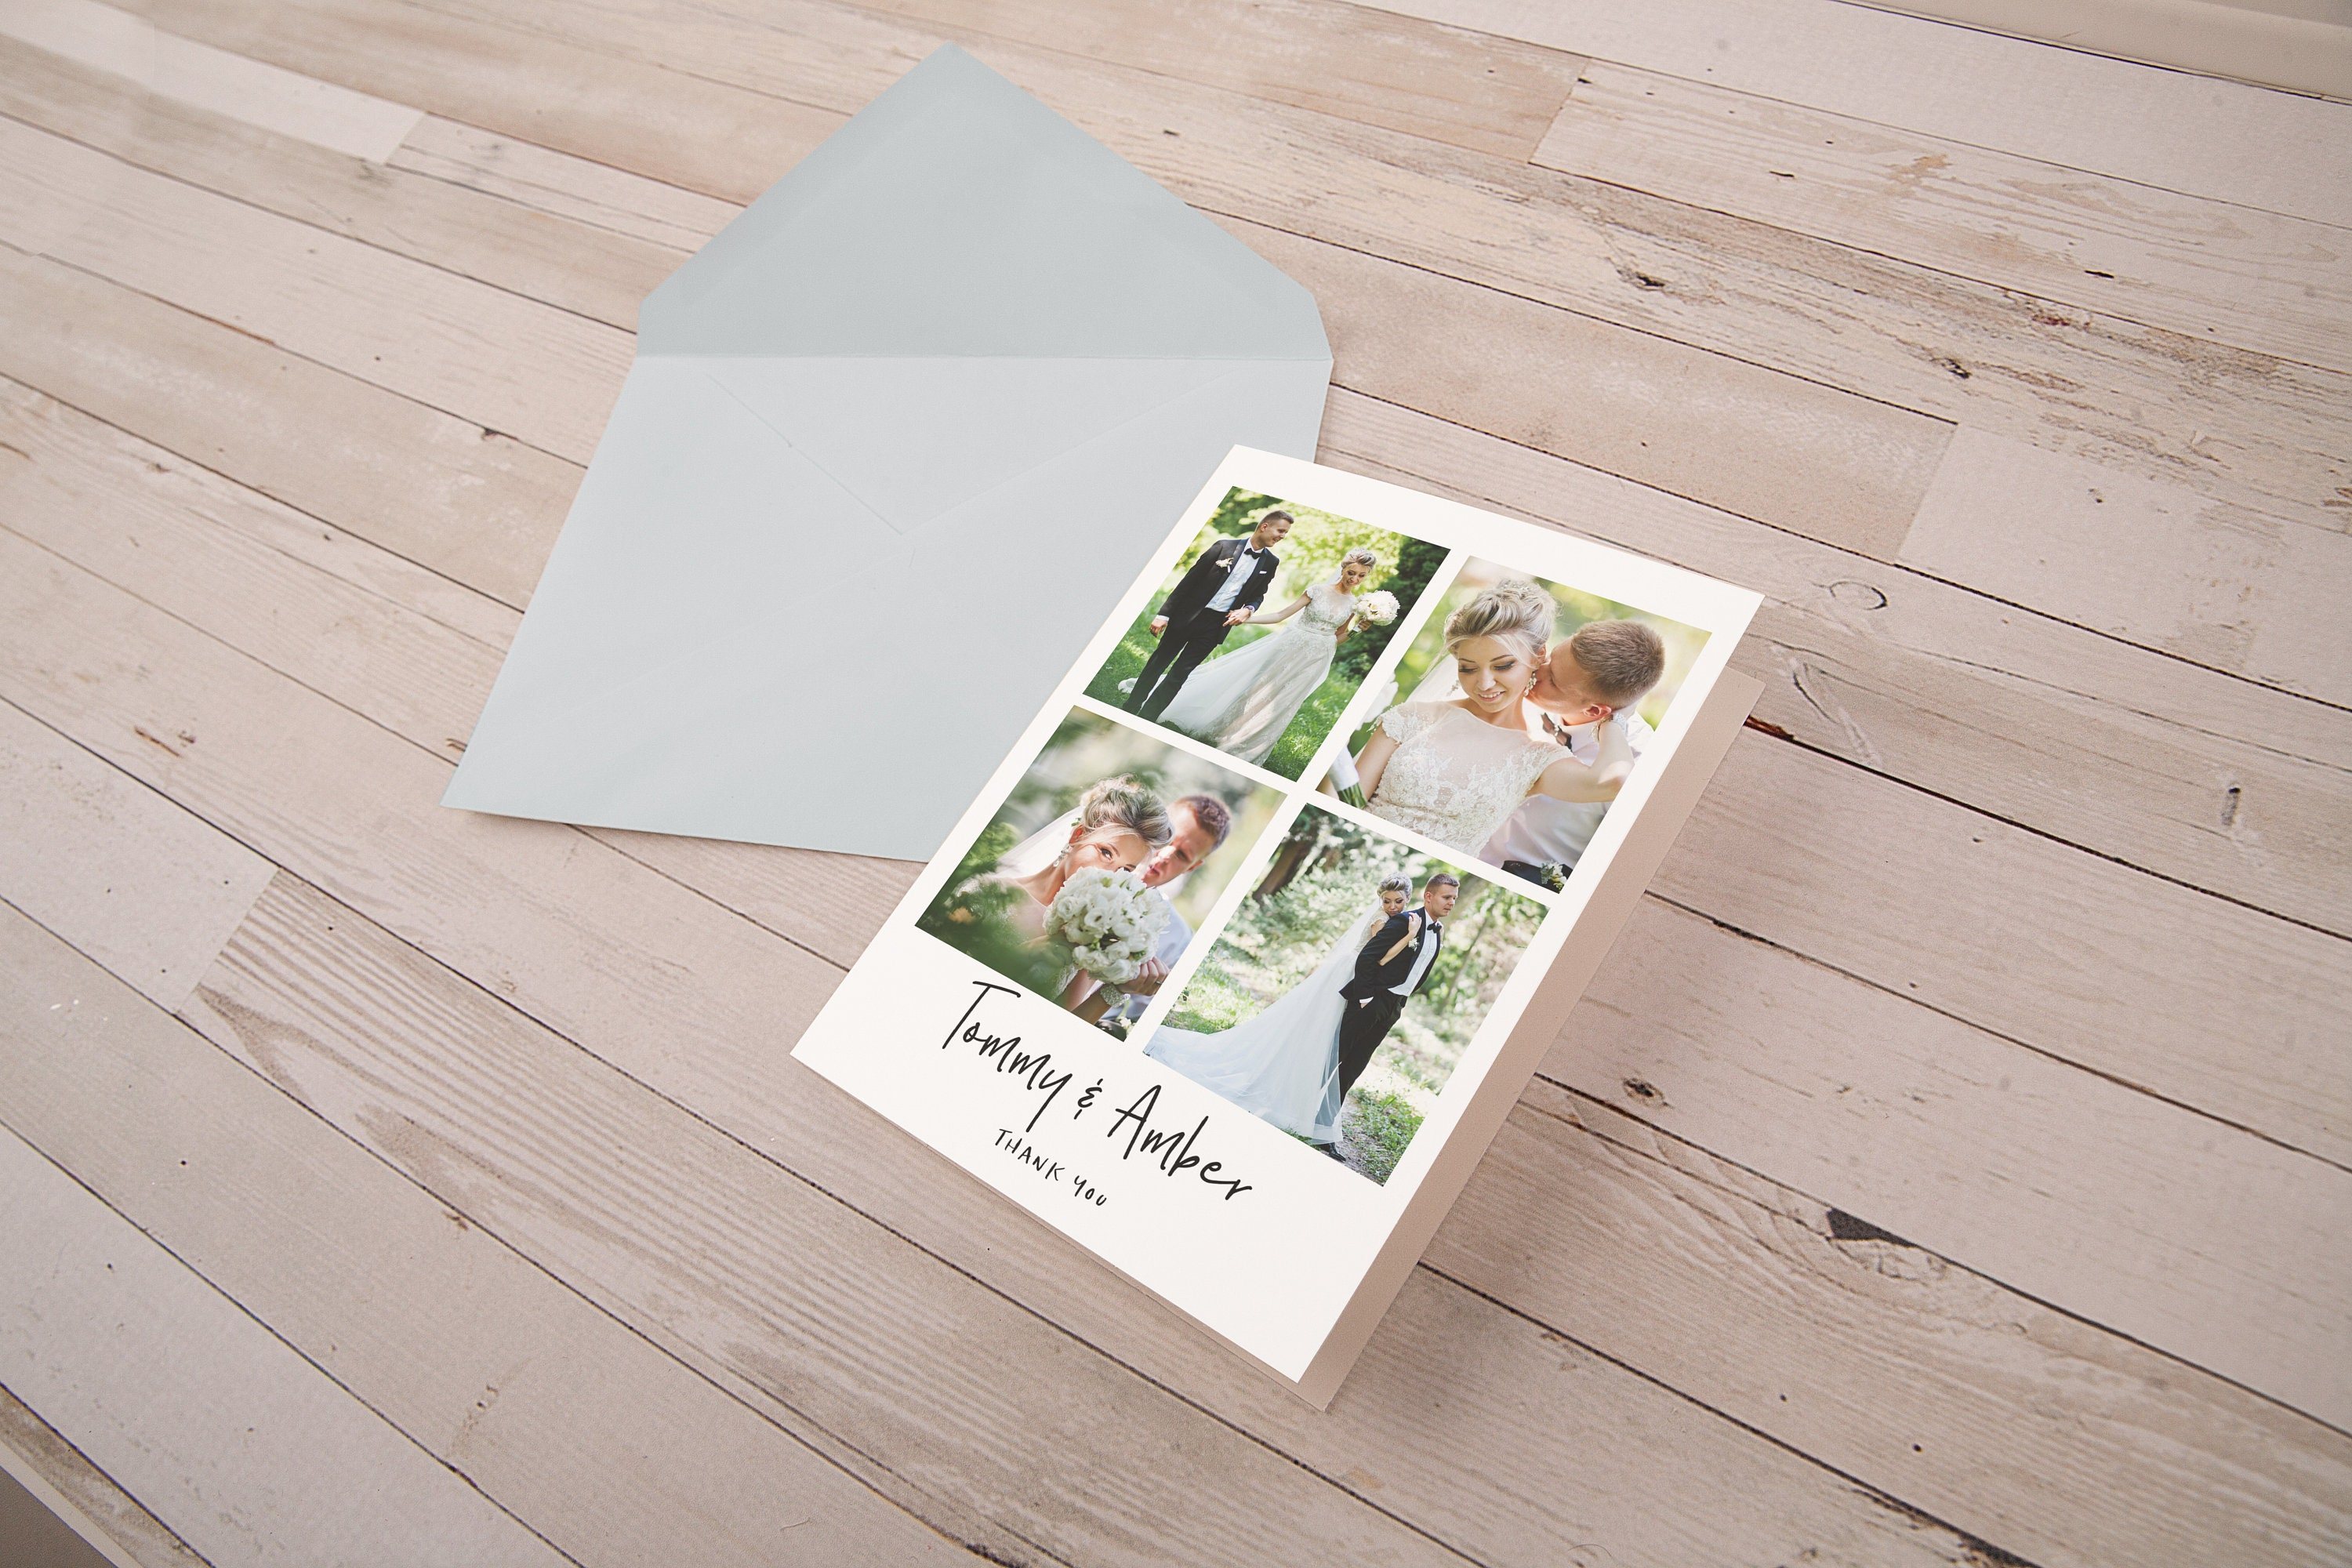 personalized folded note cards with envelopes blank note card set thank you note cards wedding thank you notes shower greeting cards - Personalized Folded Note Cards